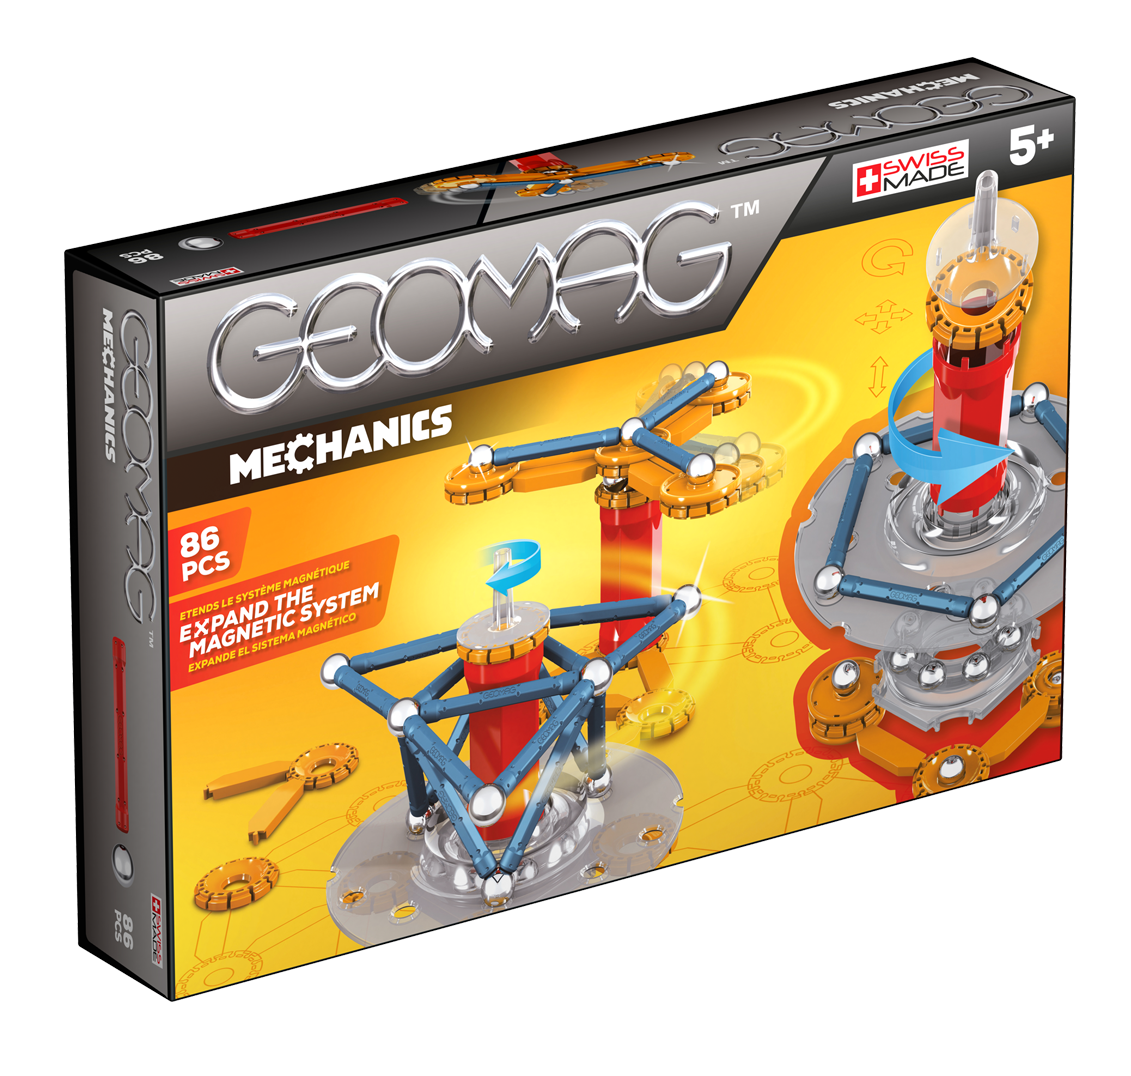 GEOMAG Mechanics 86 Piece Construction Set